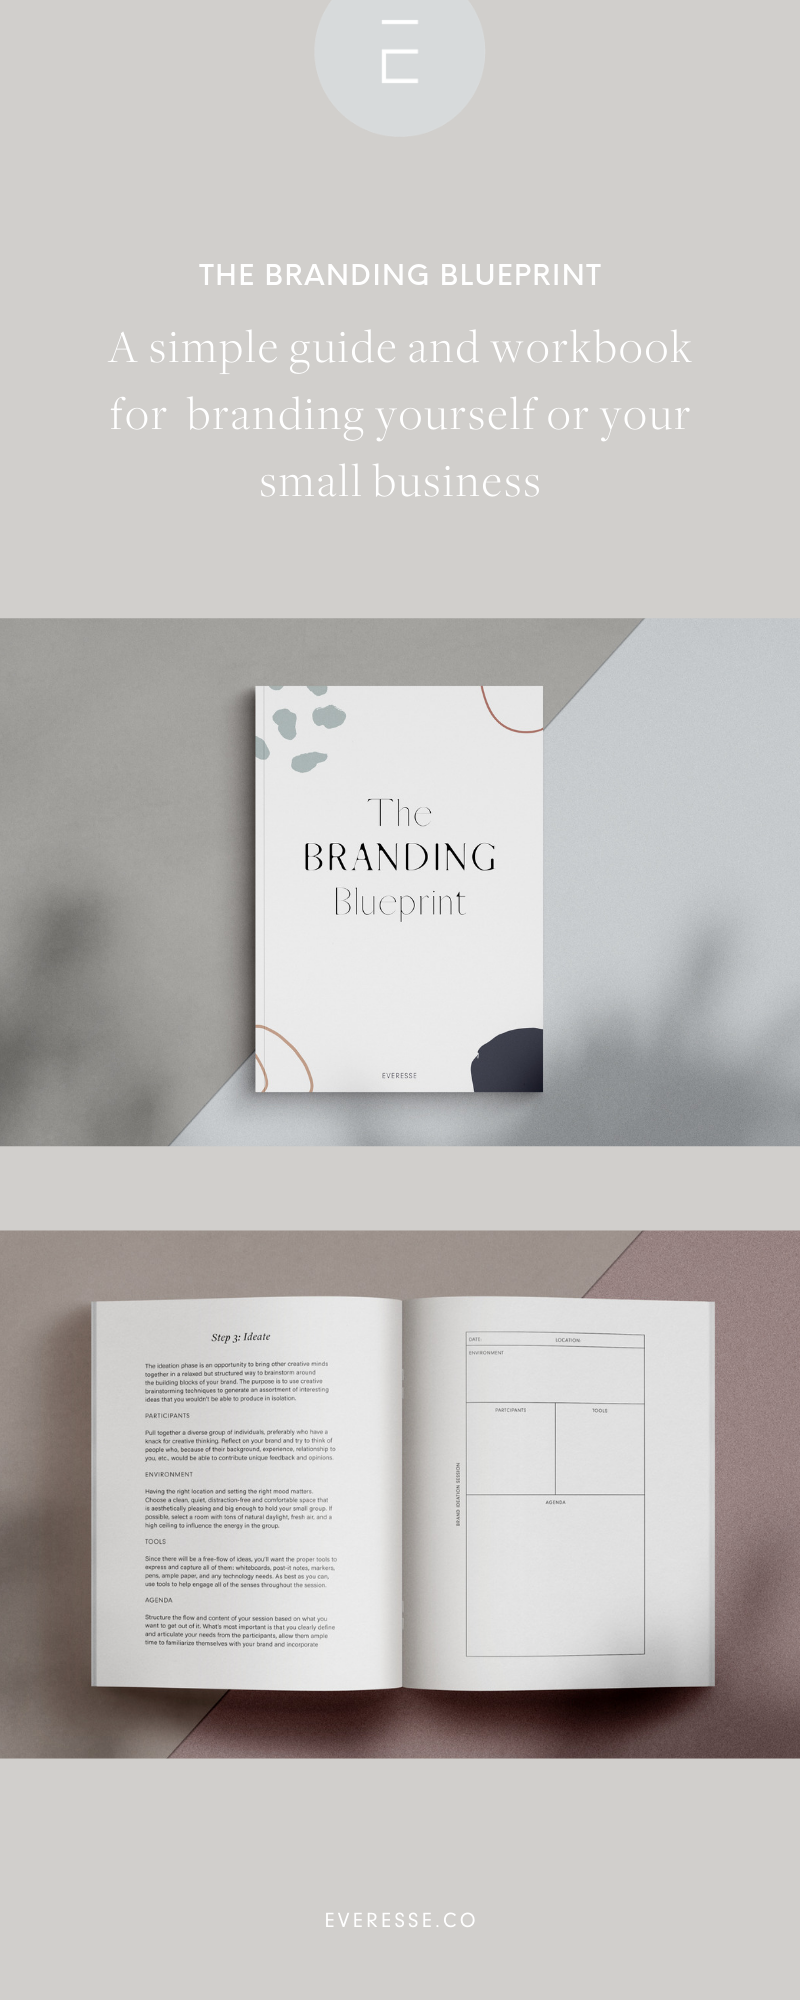 The Branding Blueprint Workbook is part of Branding, Small business branding, Branding process, Modern branding, Brand strategy, Brand book - You can design a brand from scratch, without spending a fortune, if you understand the basics that we outline in our simple guide to branding yourself or your business    By being smart and efficient, you can design a brand strategy and brand identity that resonates with your intended audience and d